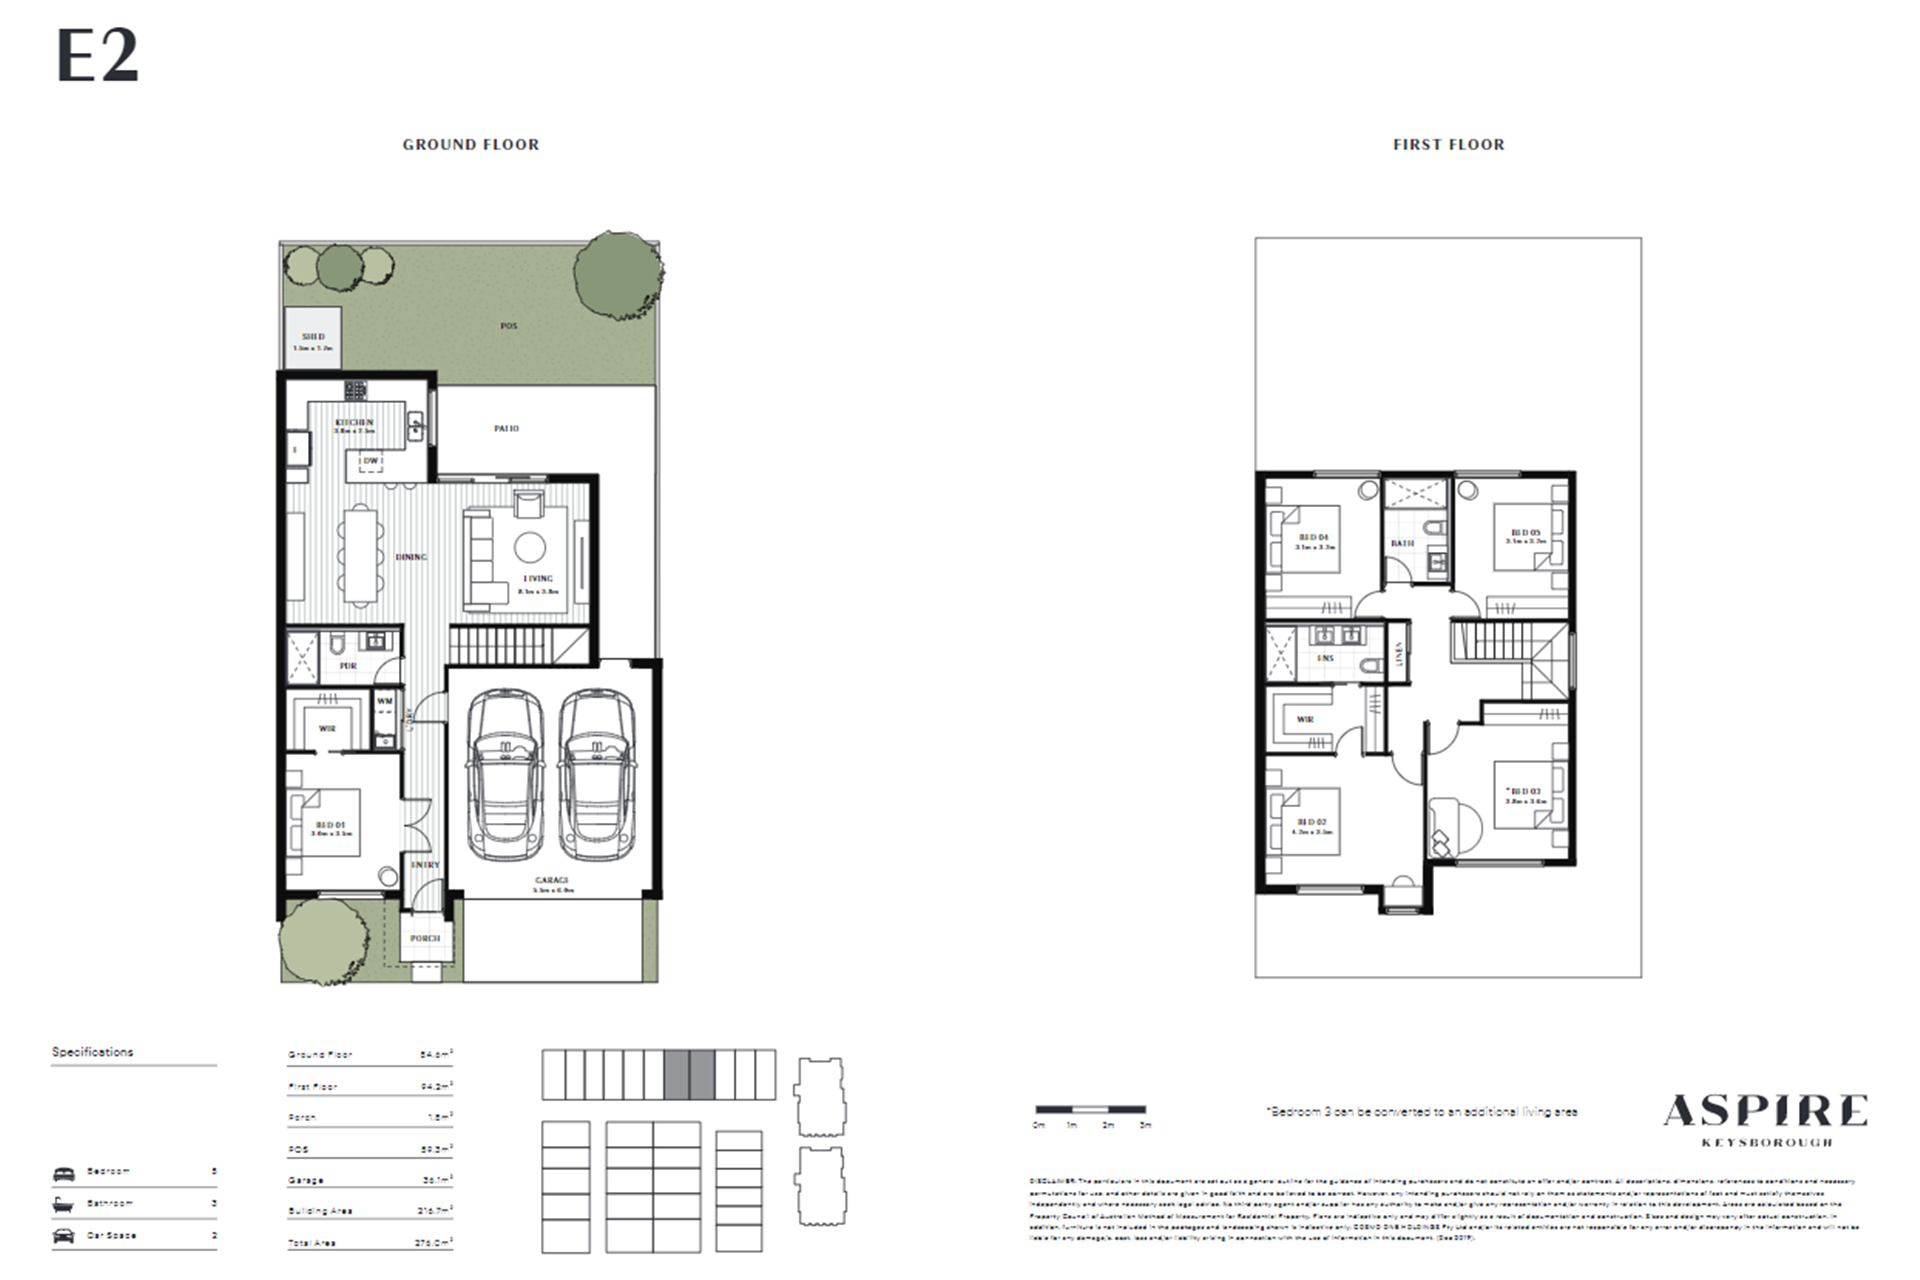 Aspire   E2 Floor Plan (Townhouse)